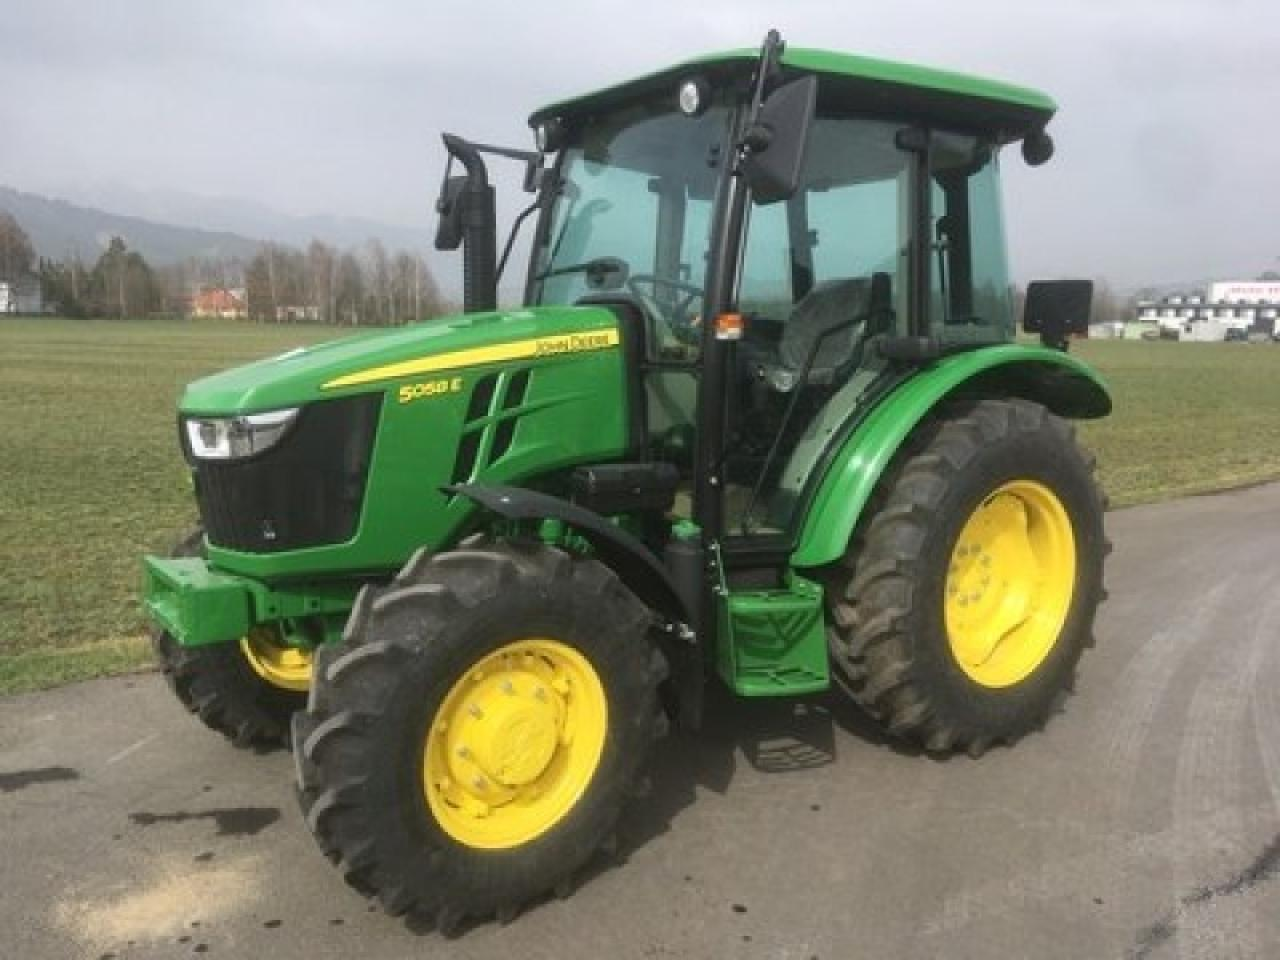 John Deere 5058 e wheel tractor from Germany for sale at Truck1, ID: 5088575